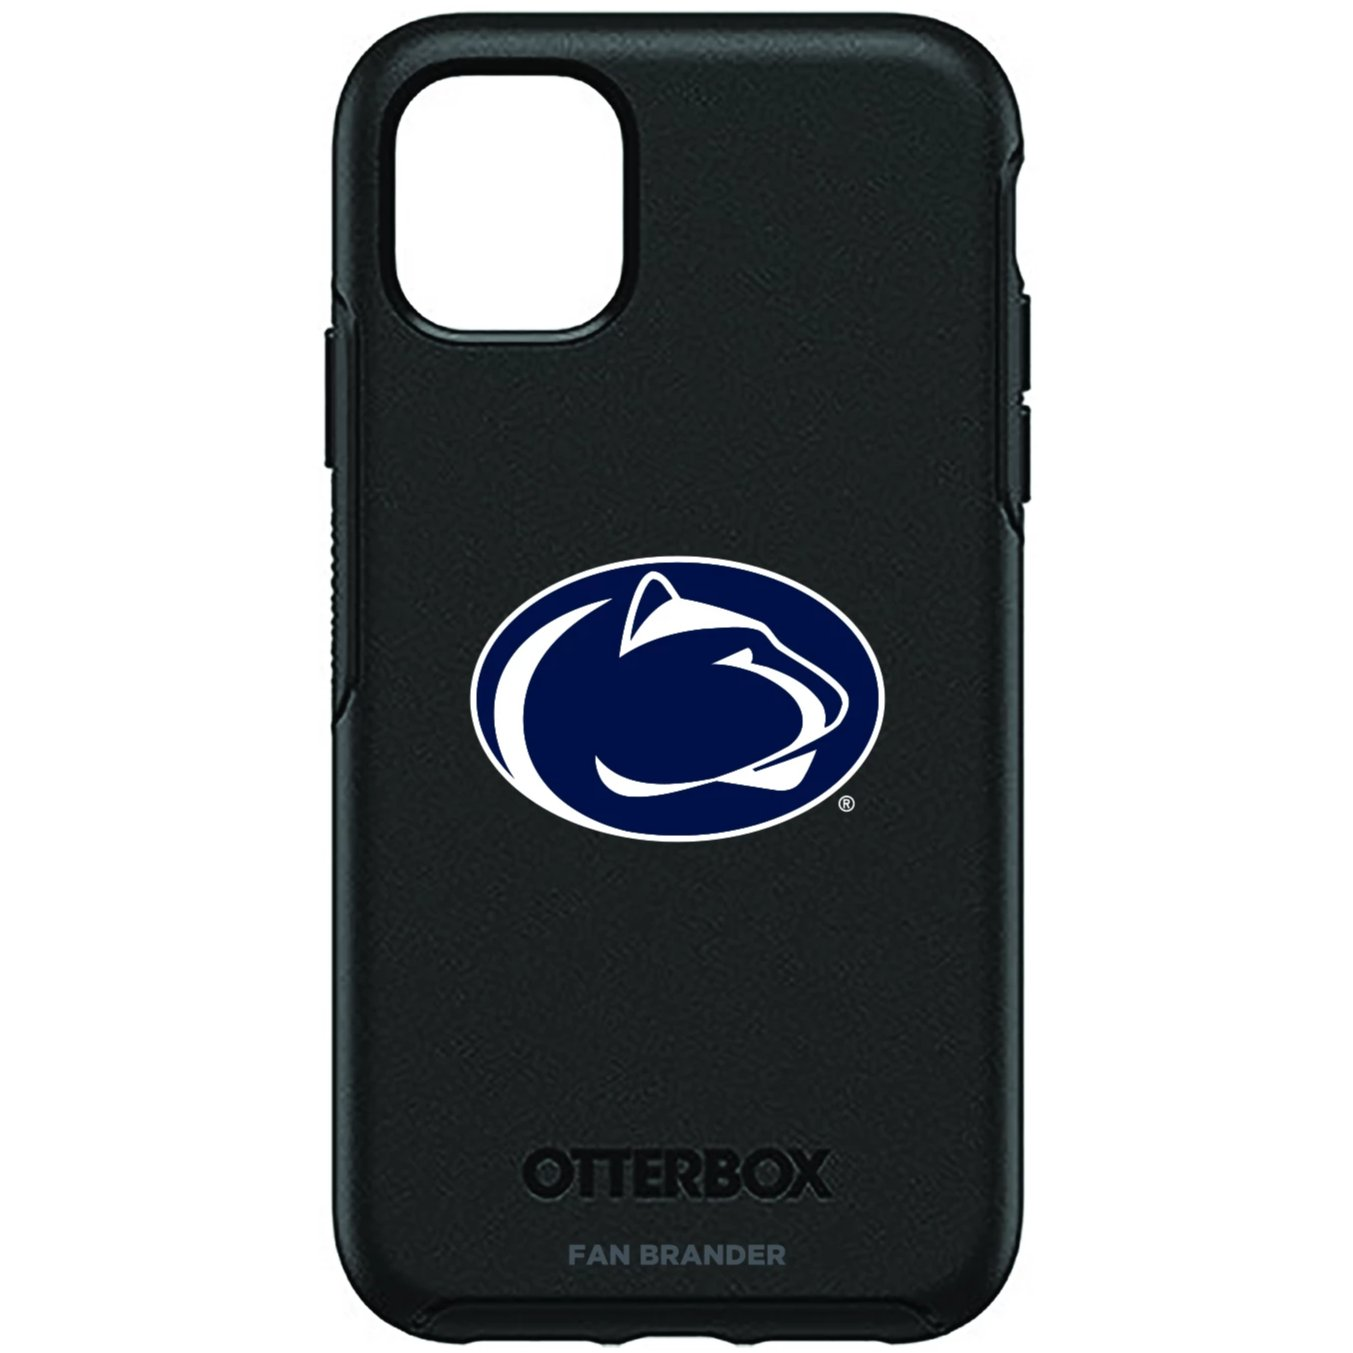 Penn State Nittany Lions Otterbox Symmetry Case (for iPhone 11, Pro, Pro Max)